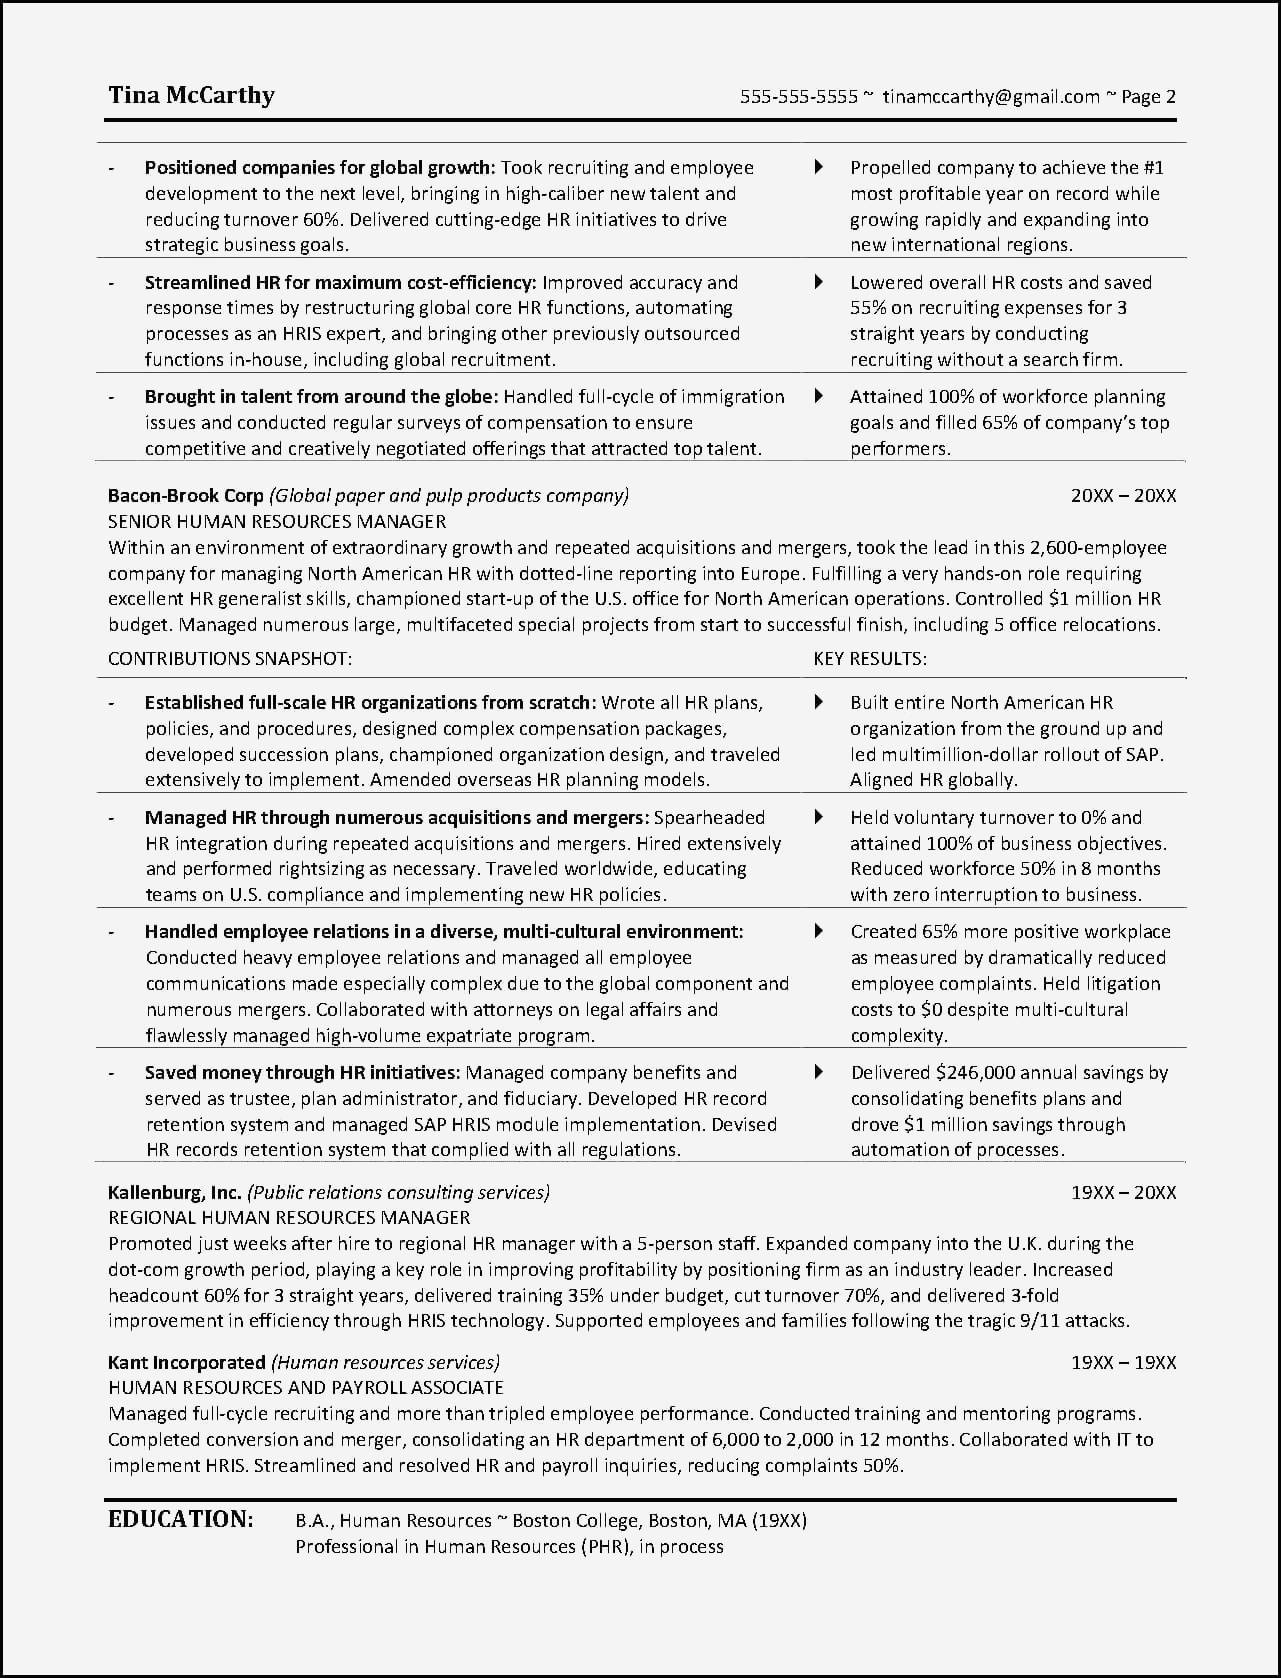 Mergers and Acquisitions Resume Template - Resume Template Examples Fresh 20 Resume Objective Examples Entry